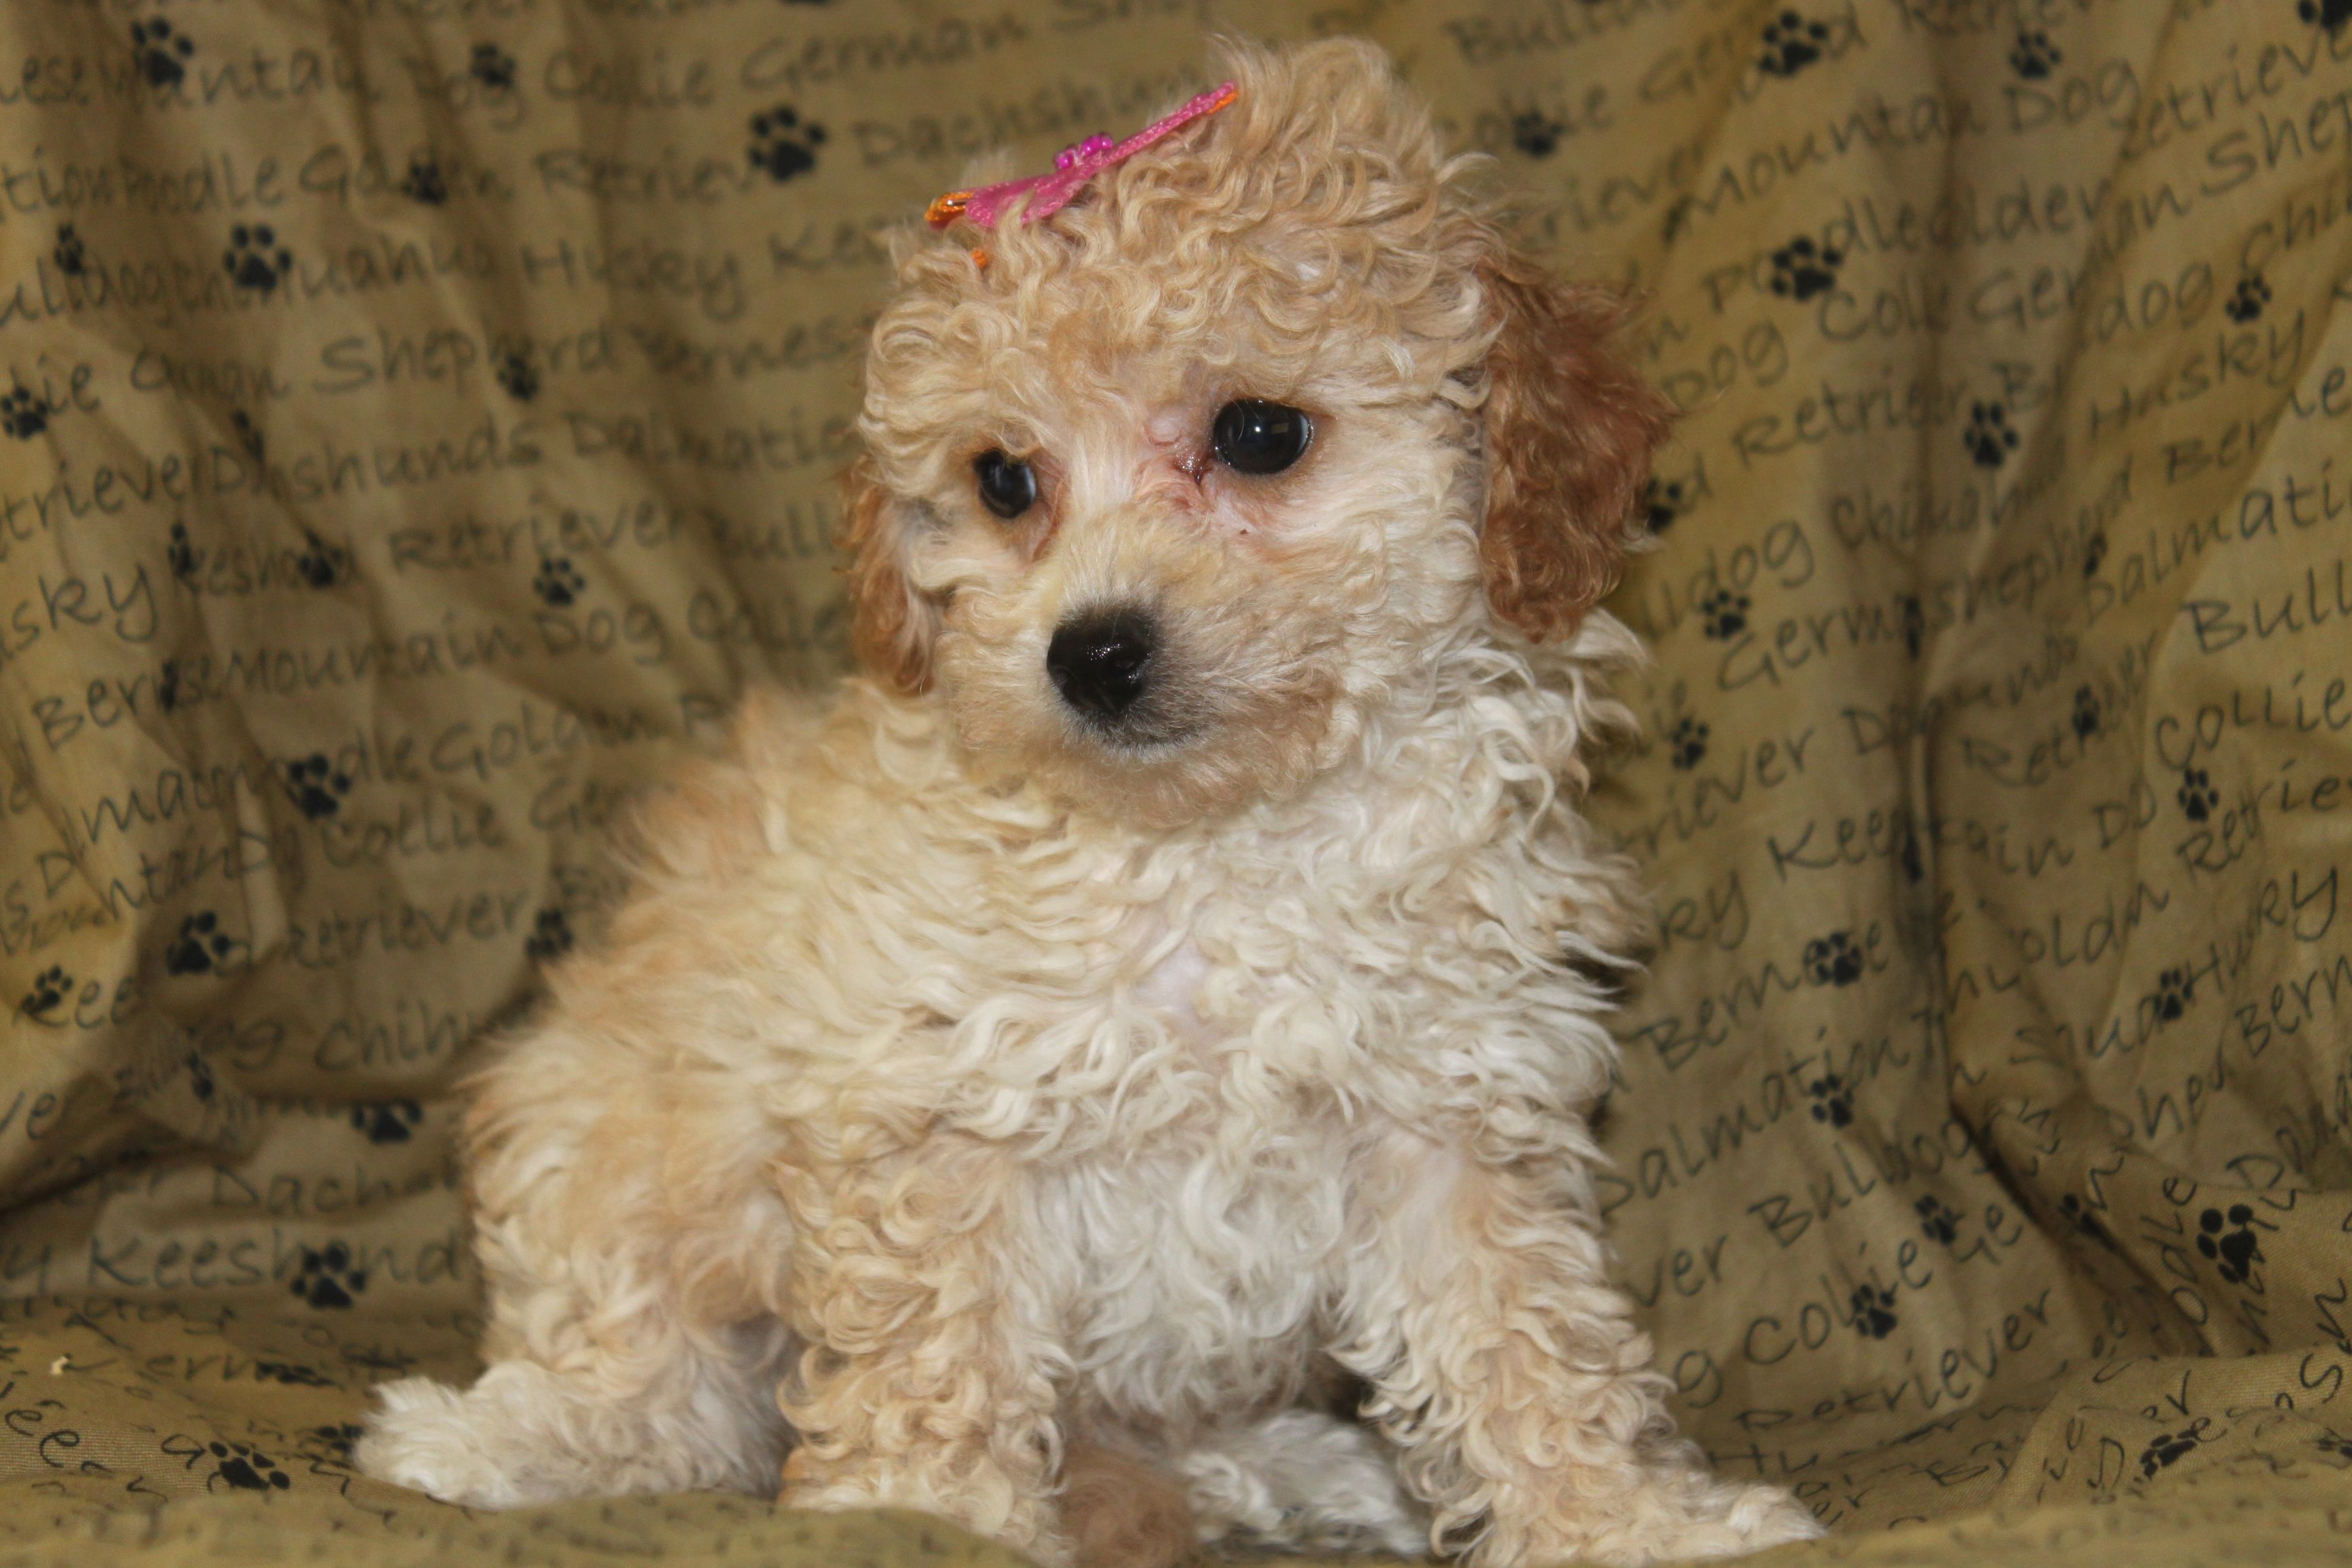 Poo Puppies For Sale In Shippensburg Pennsylvania http